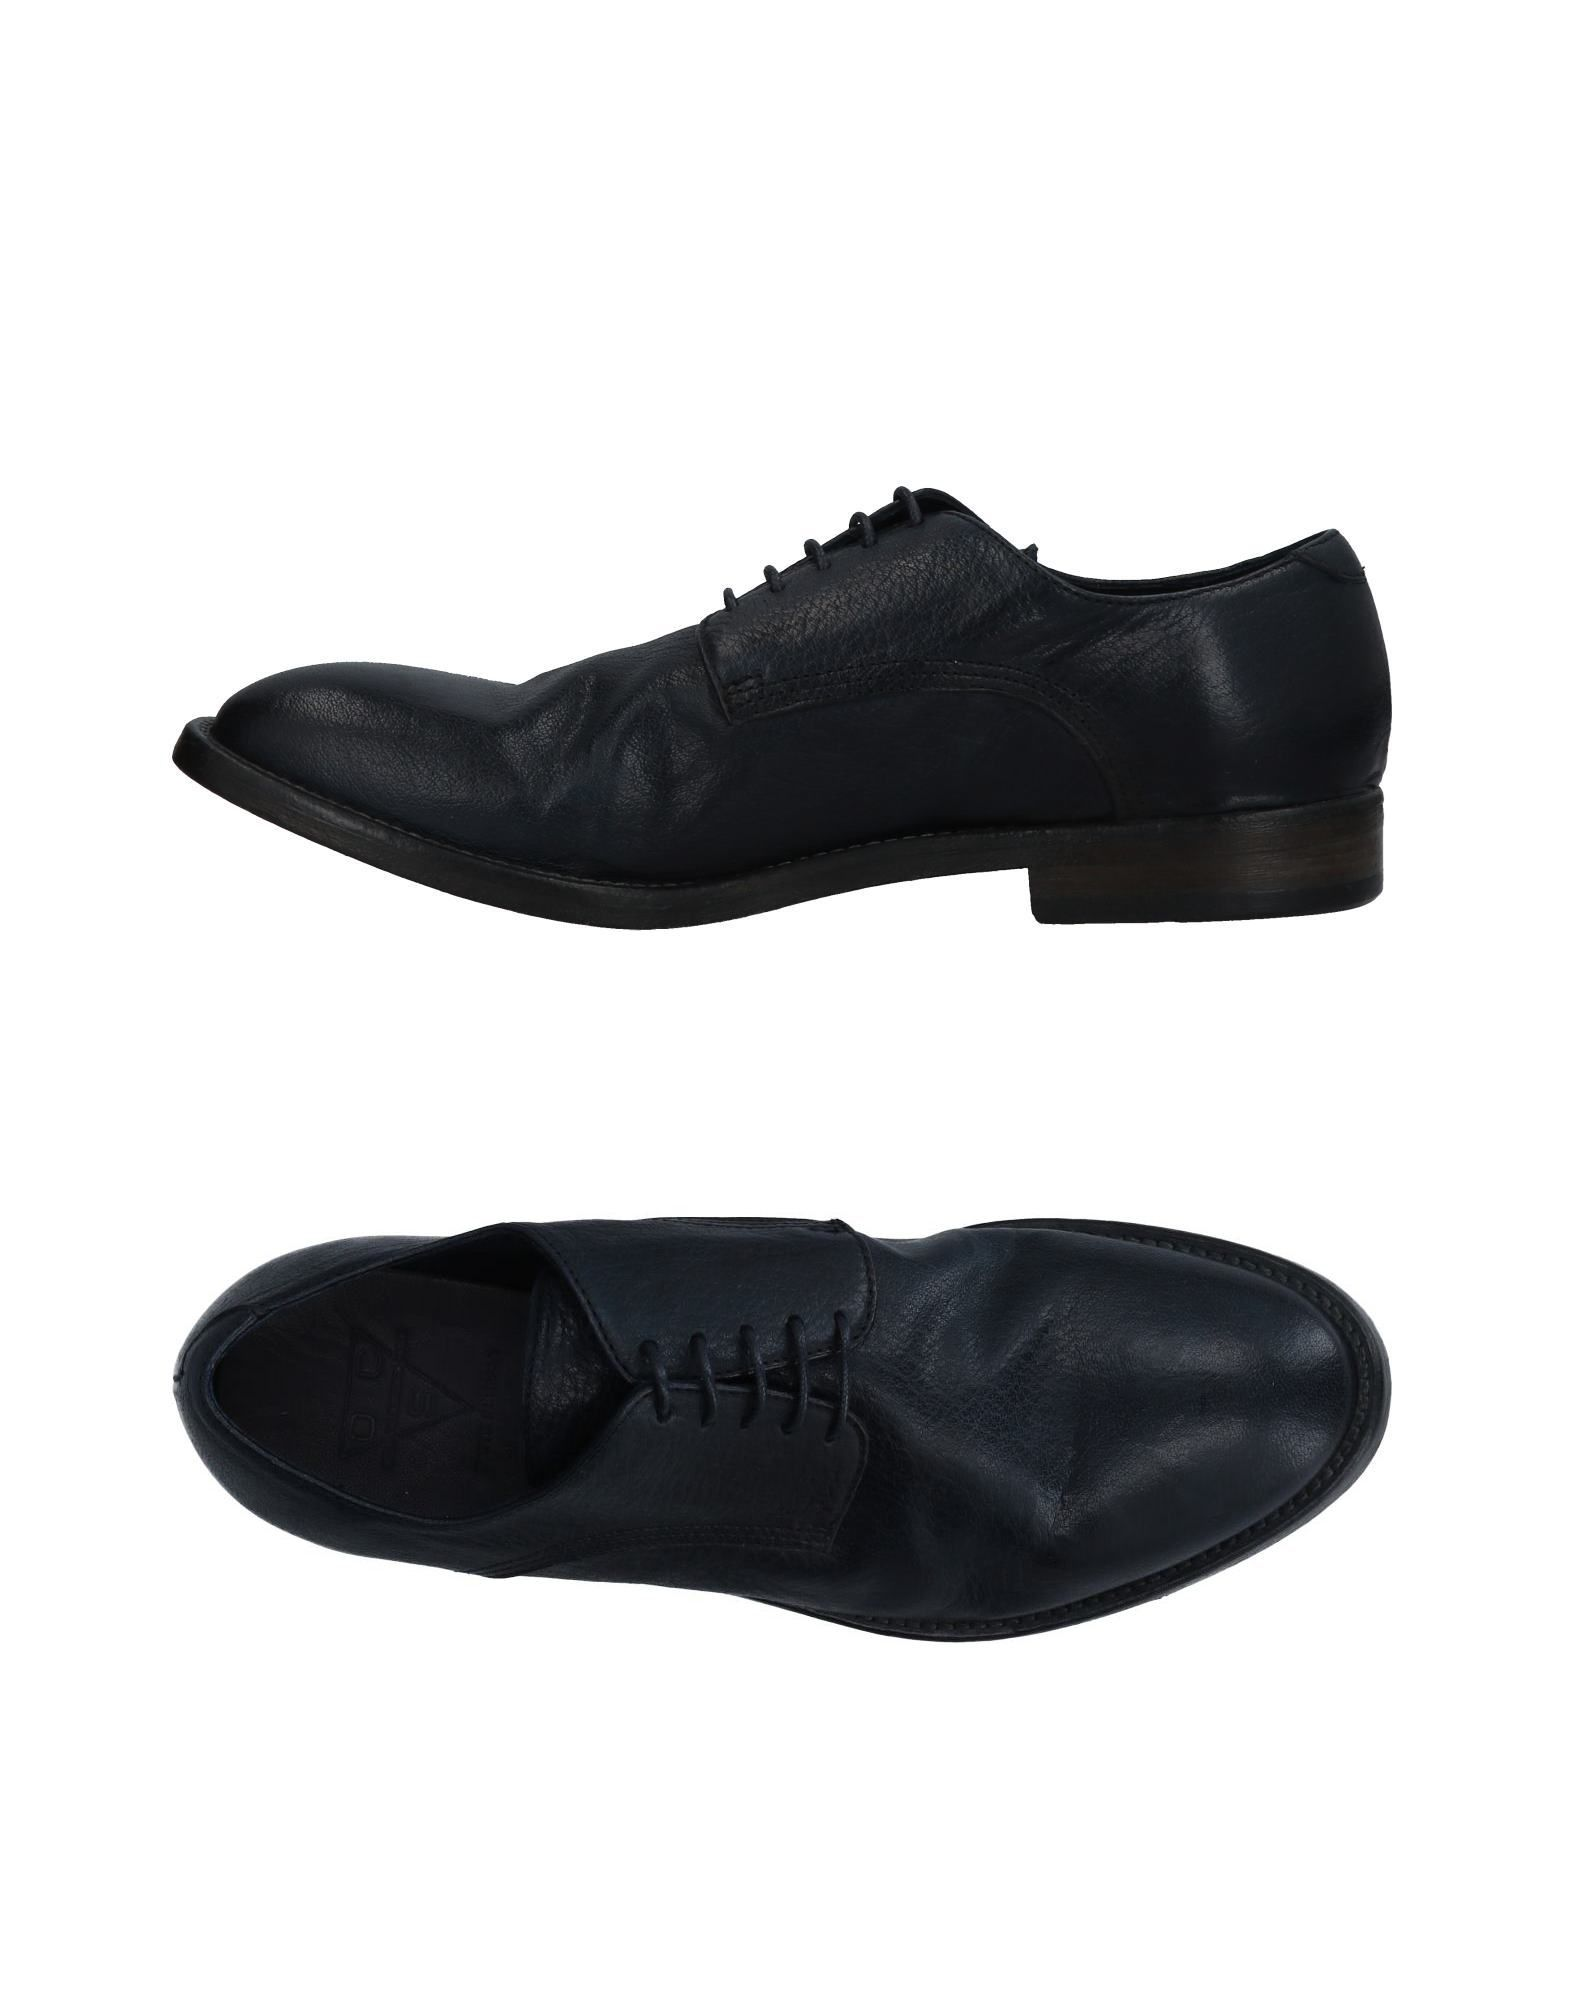 Chaussures À Lacets Open Closed  Shoes Homme - Chaussures À Lacets Open Closed  Shoes sur